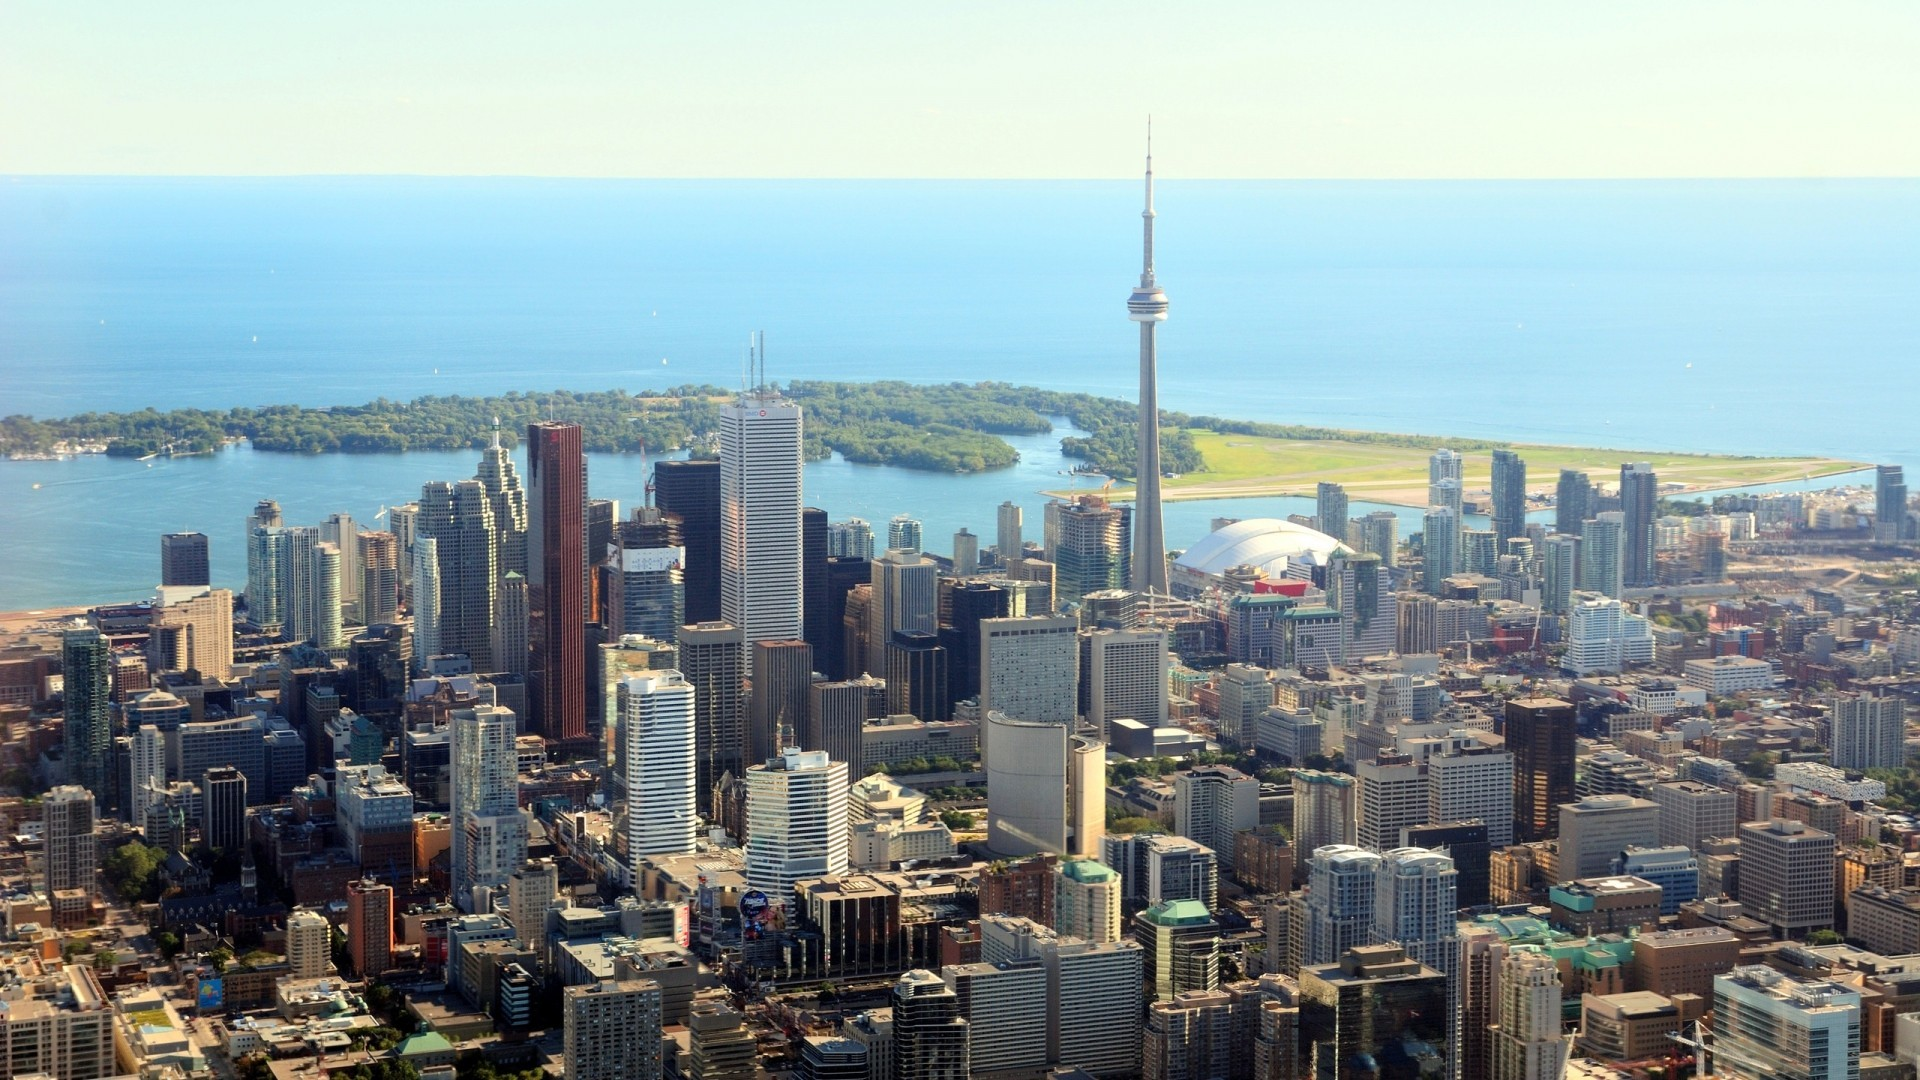 1920x1080 Cityscapes towns skyscrapers Toronto city skyline cities wallpaper |   | 229196 | WallpaperUP